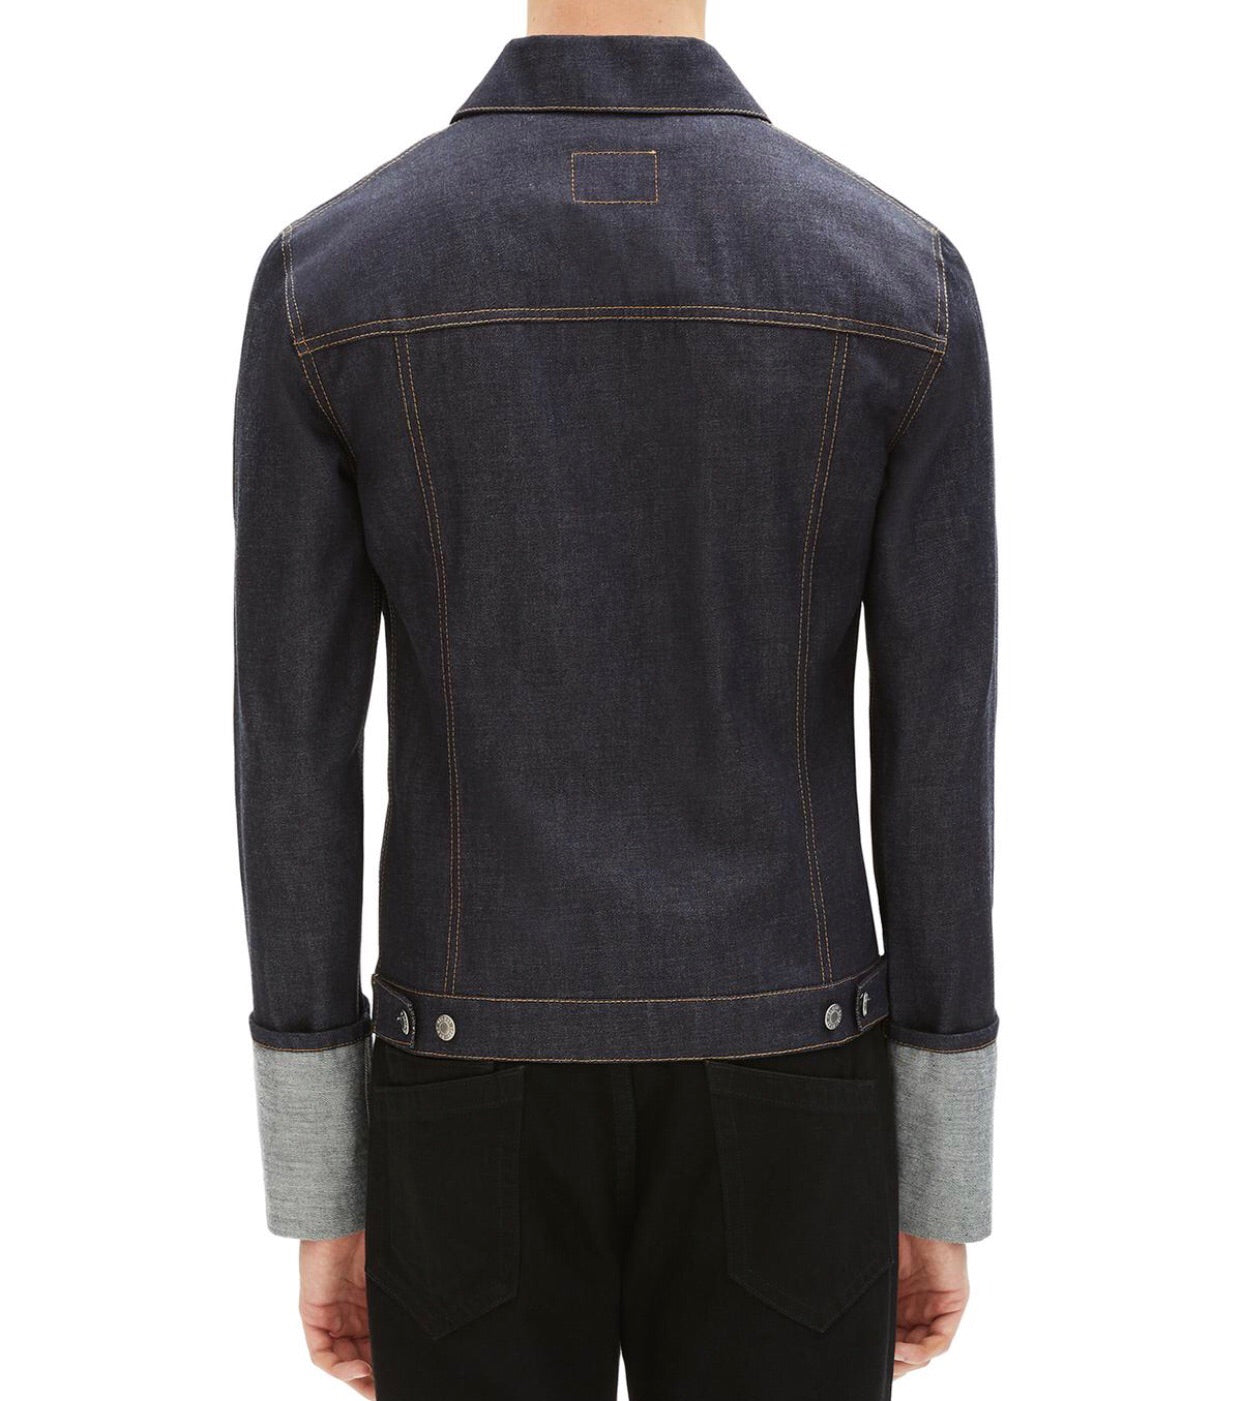 HELMUT LANG jacket - Bear Fox Babe